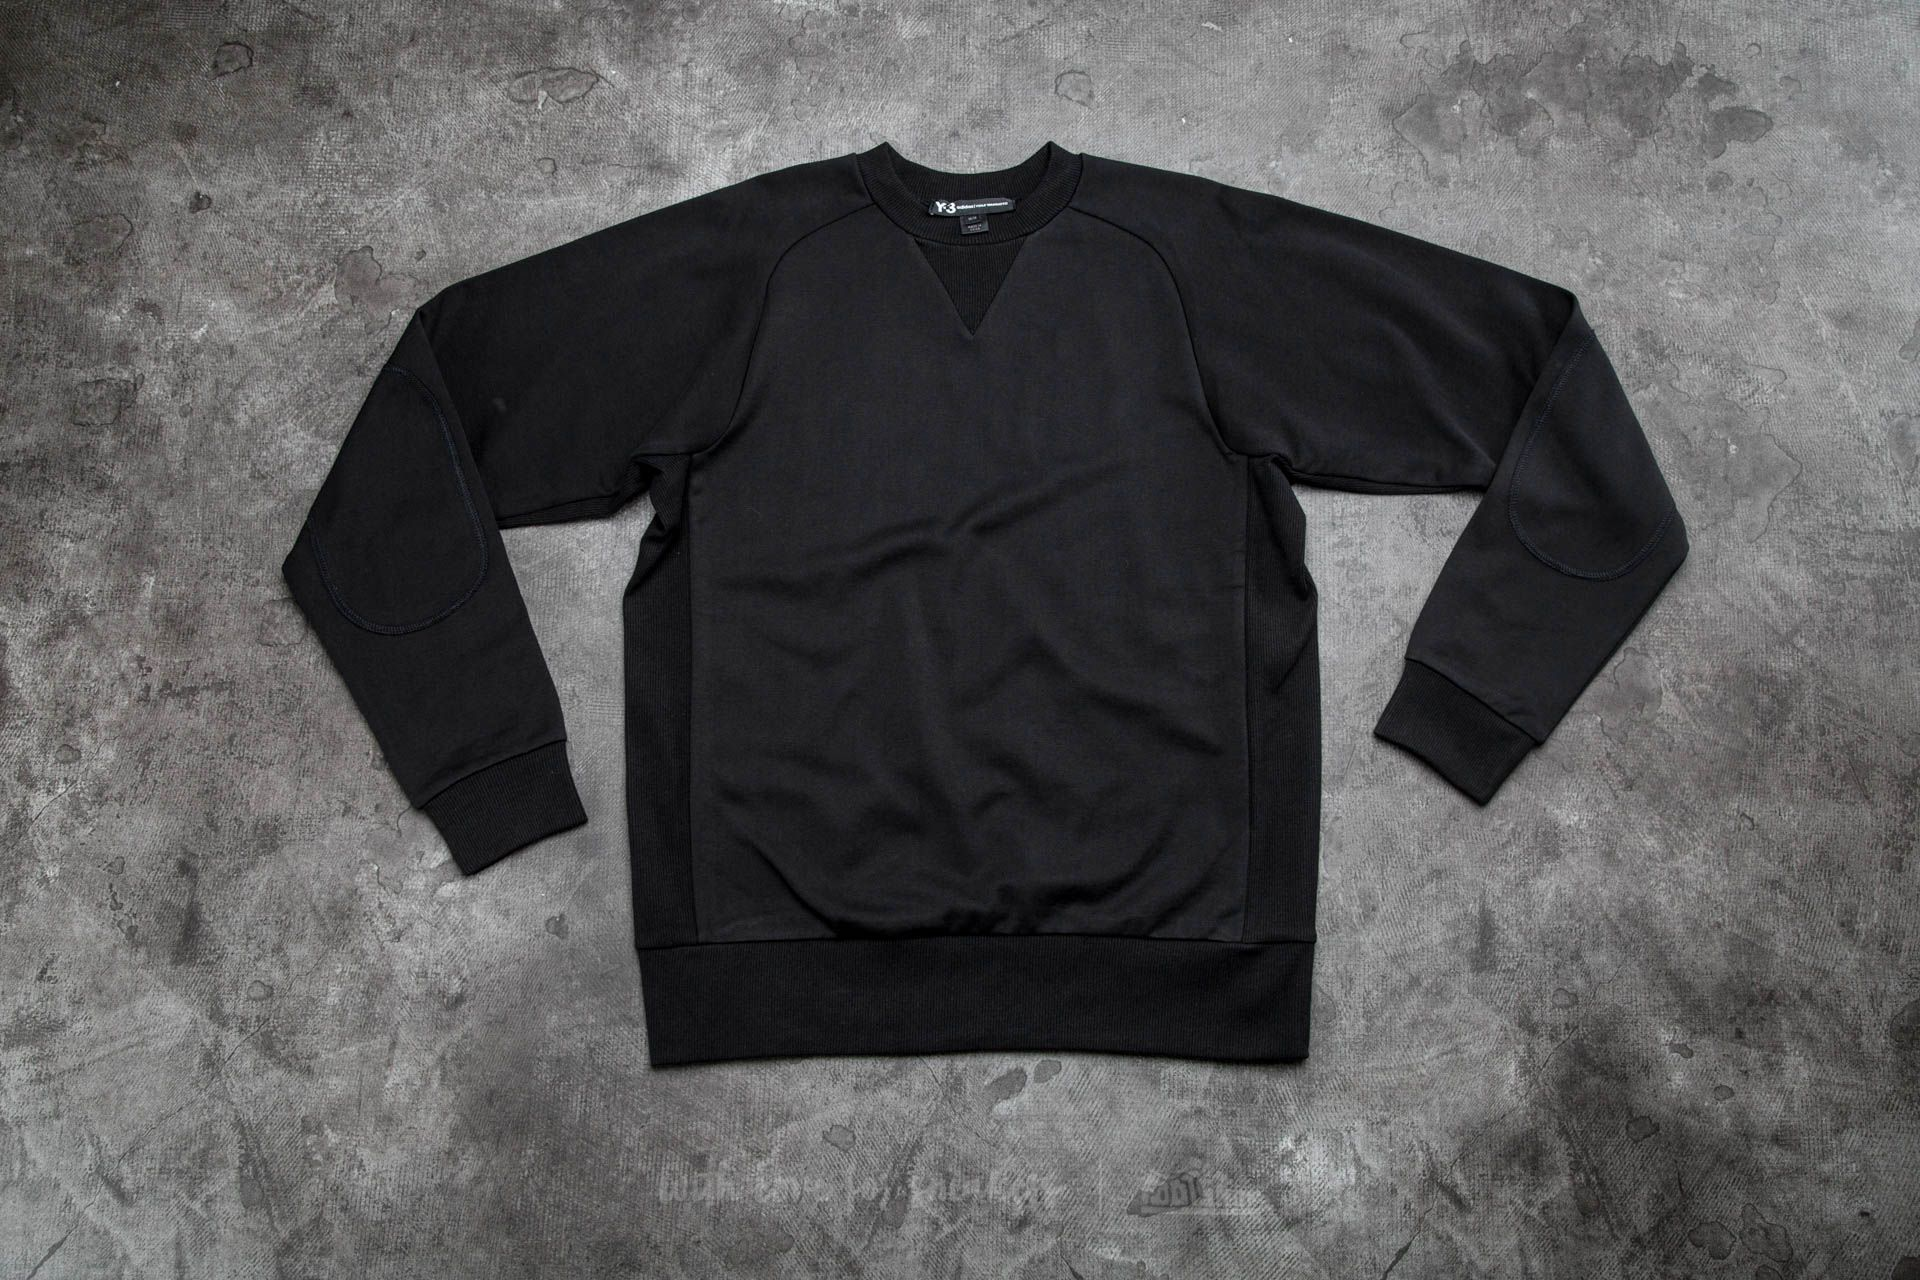 Y-3 Classic Sweat Top Black - 12837